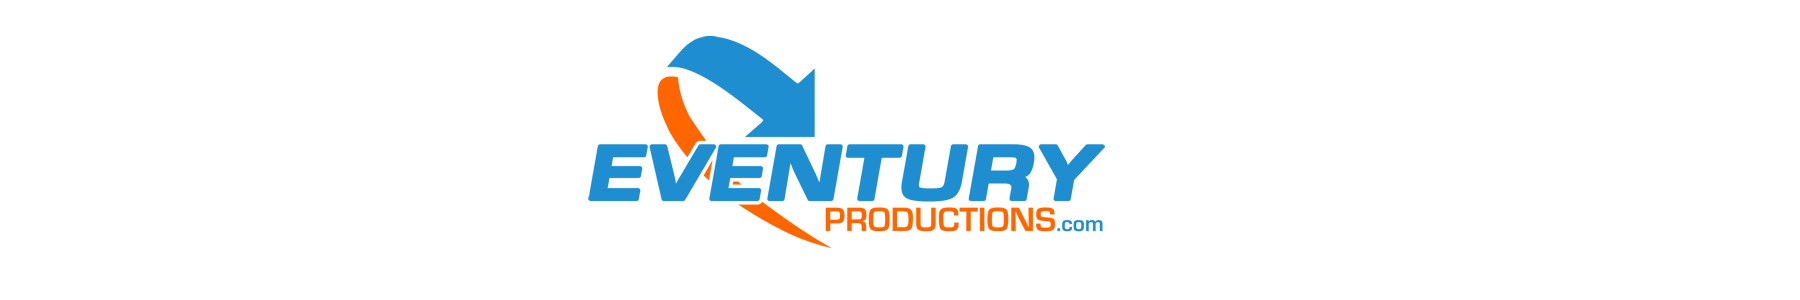 Eventury Productions logo, huren, verhuur, evenement, licht, geluid, podium, video